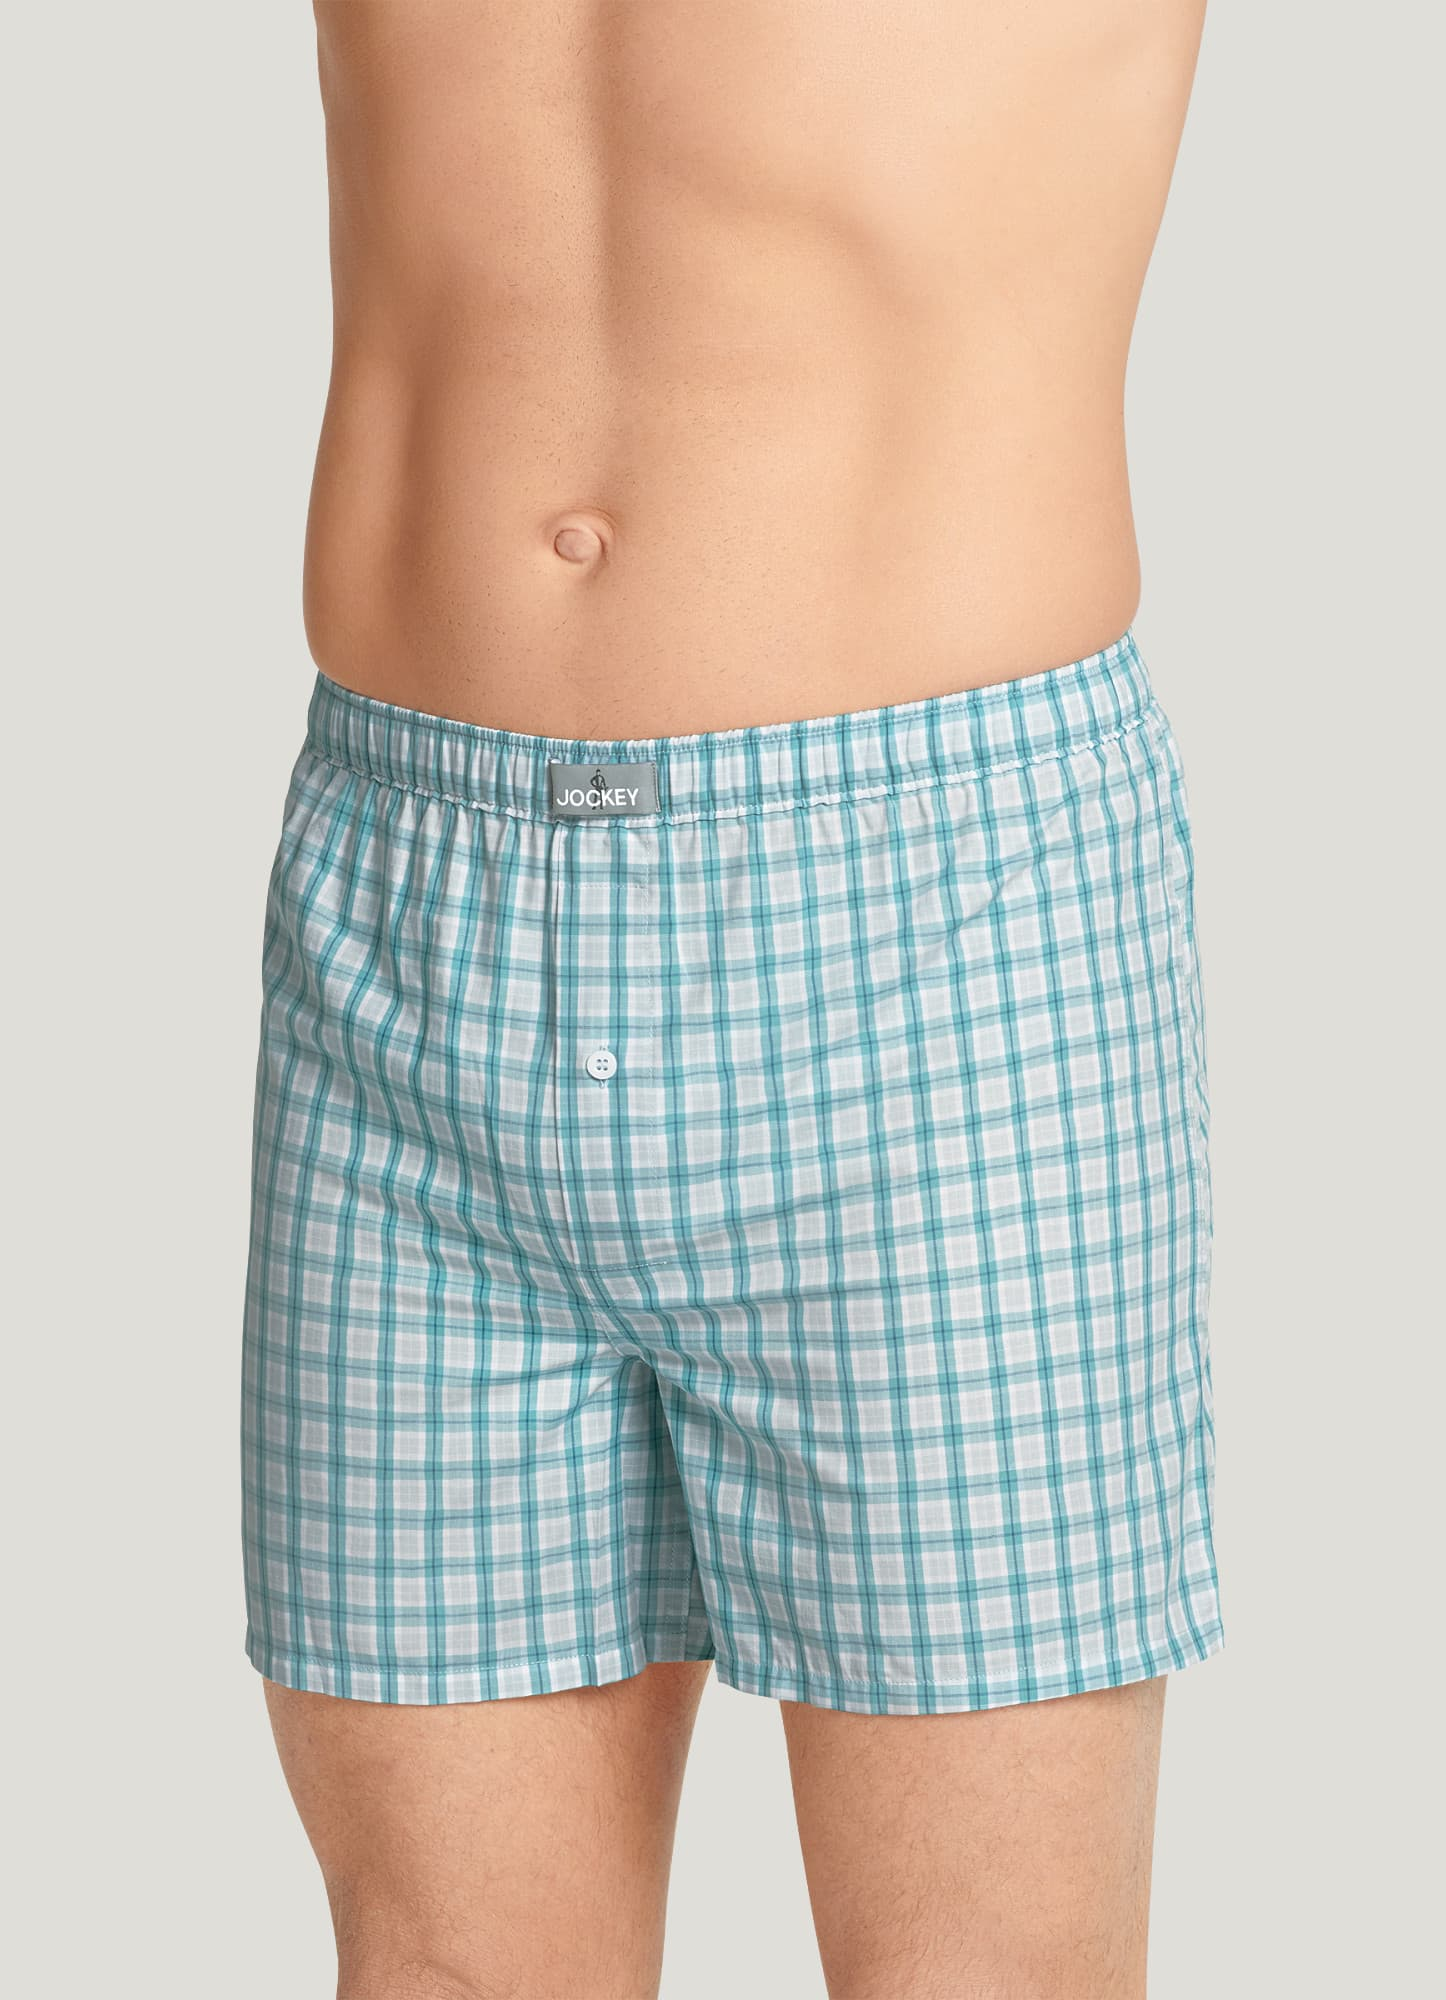 X-Large Blue Plaid Jenni Plaid Boxer Pajama Shorts